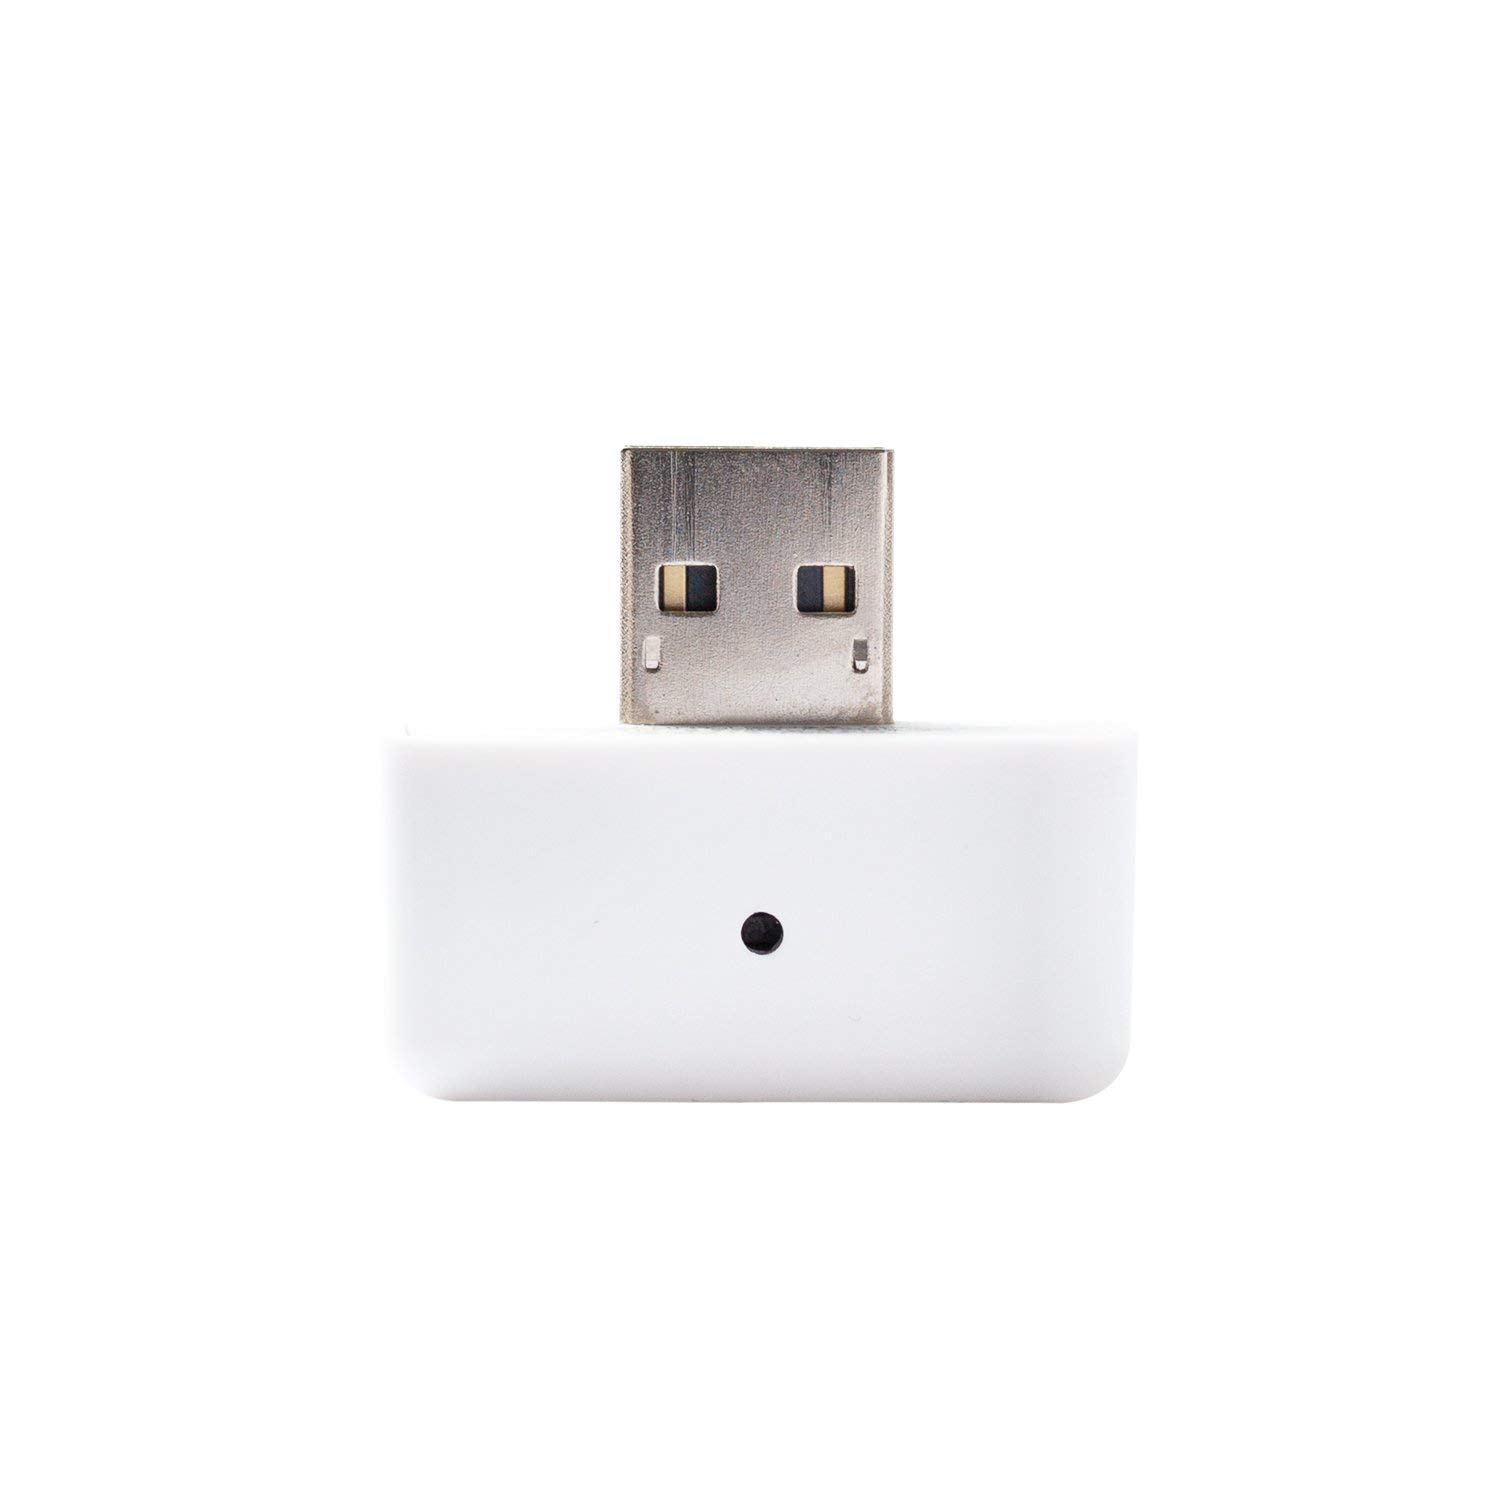 CANDY HOUSE Wi-Fi Access Point for Sesame Smart Lock by CANDY HOUSE